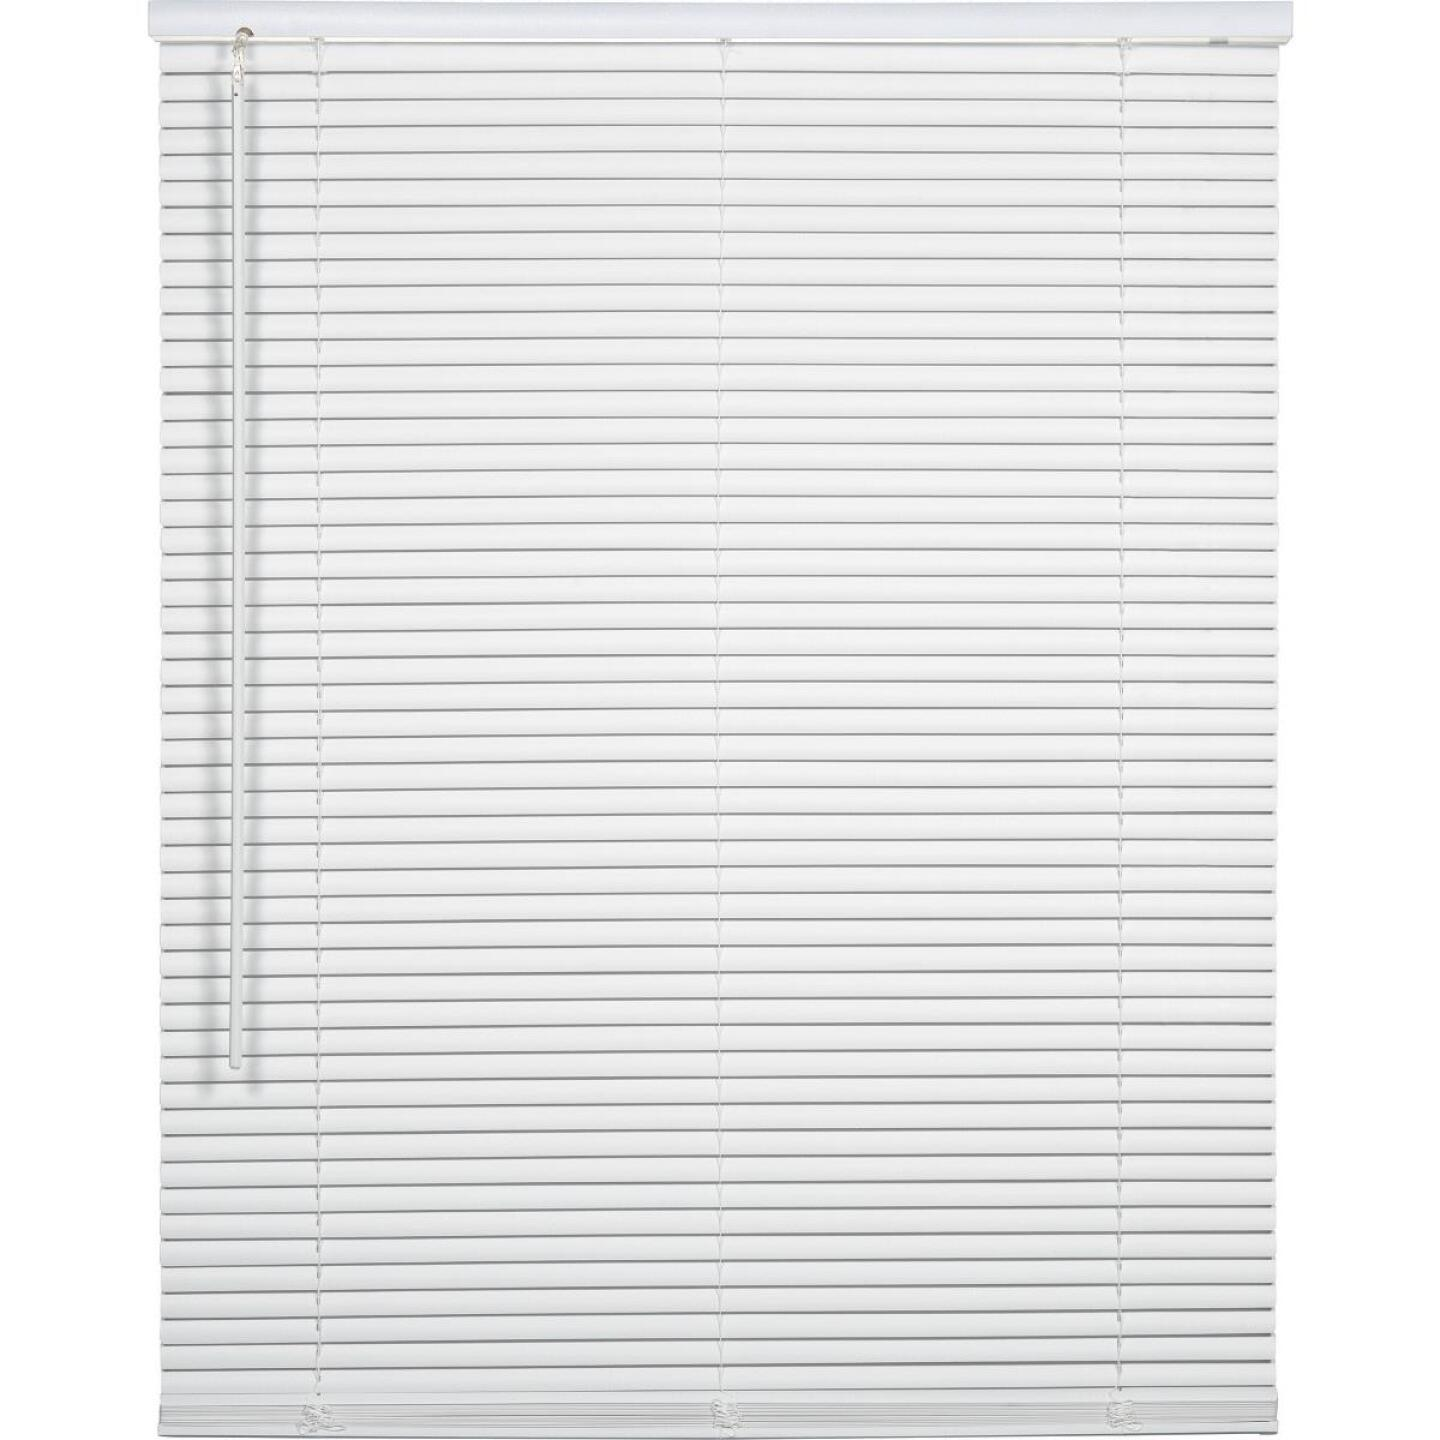 Home Impressions 39 In. x 64 In. x 1 In. White Vinyl Light Filtering Cordless Mini Blind Image 1